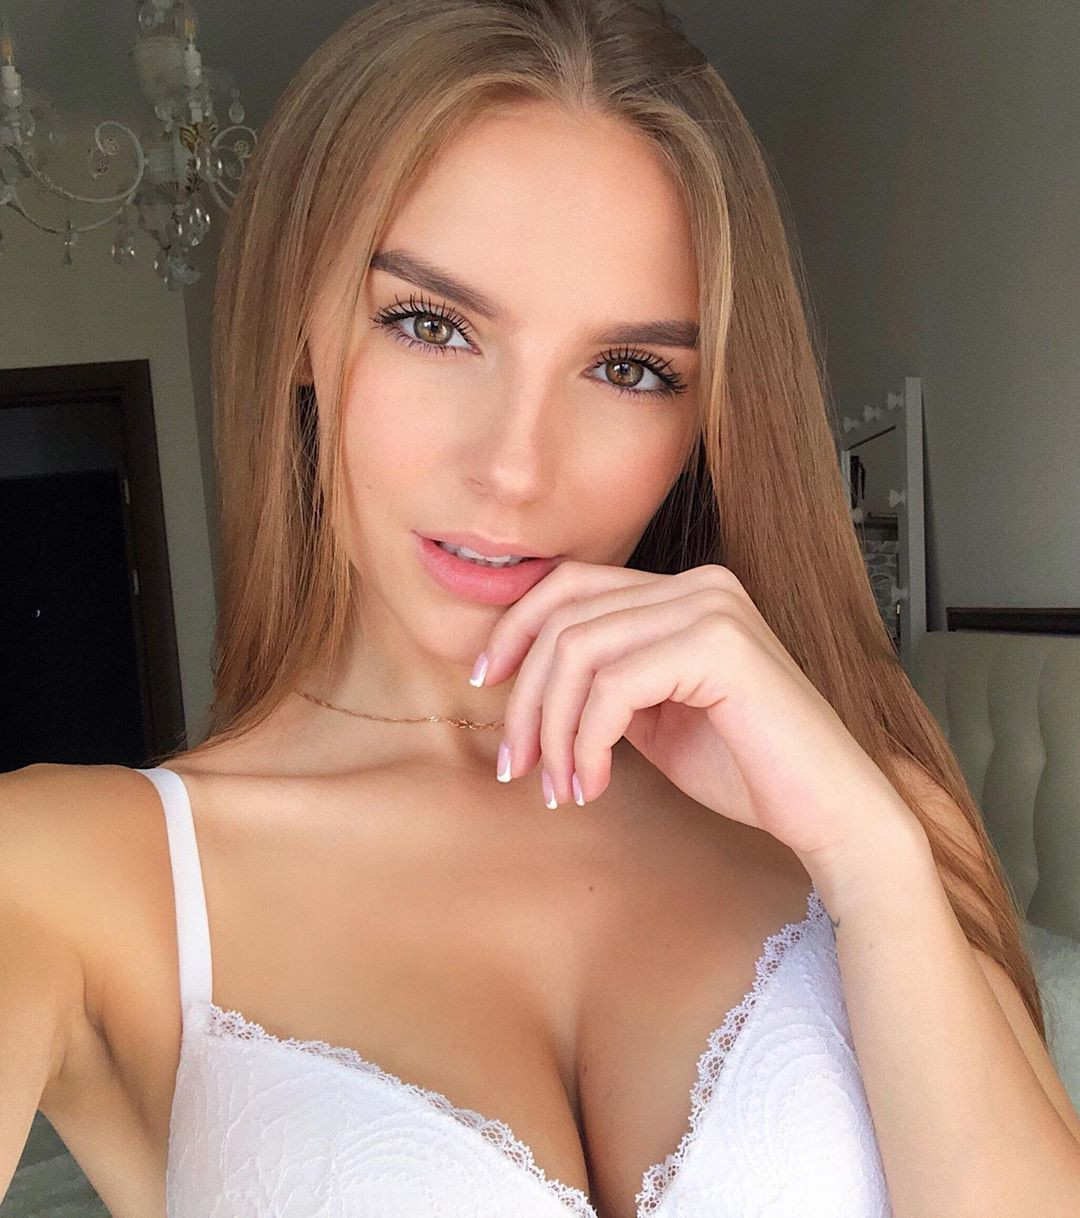 Galina Dub lingerie outfits for women, blond hairs pic, Girls Lips